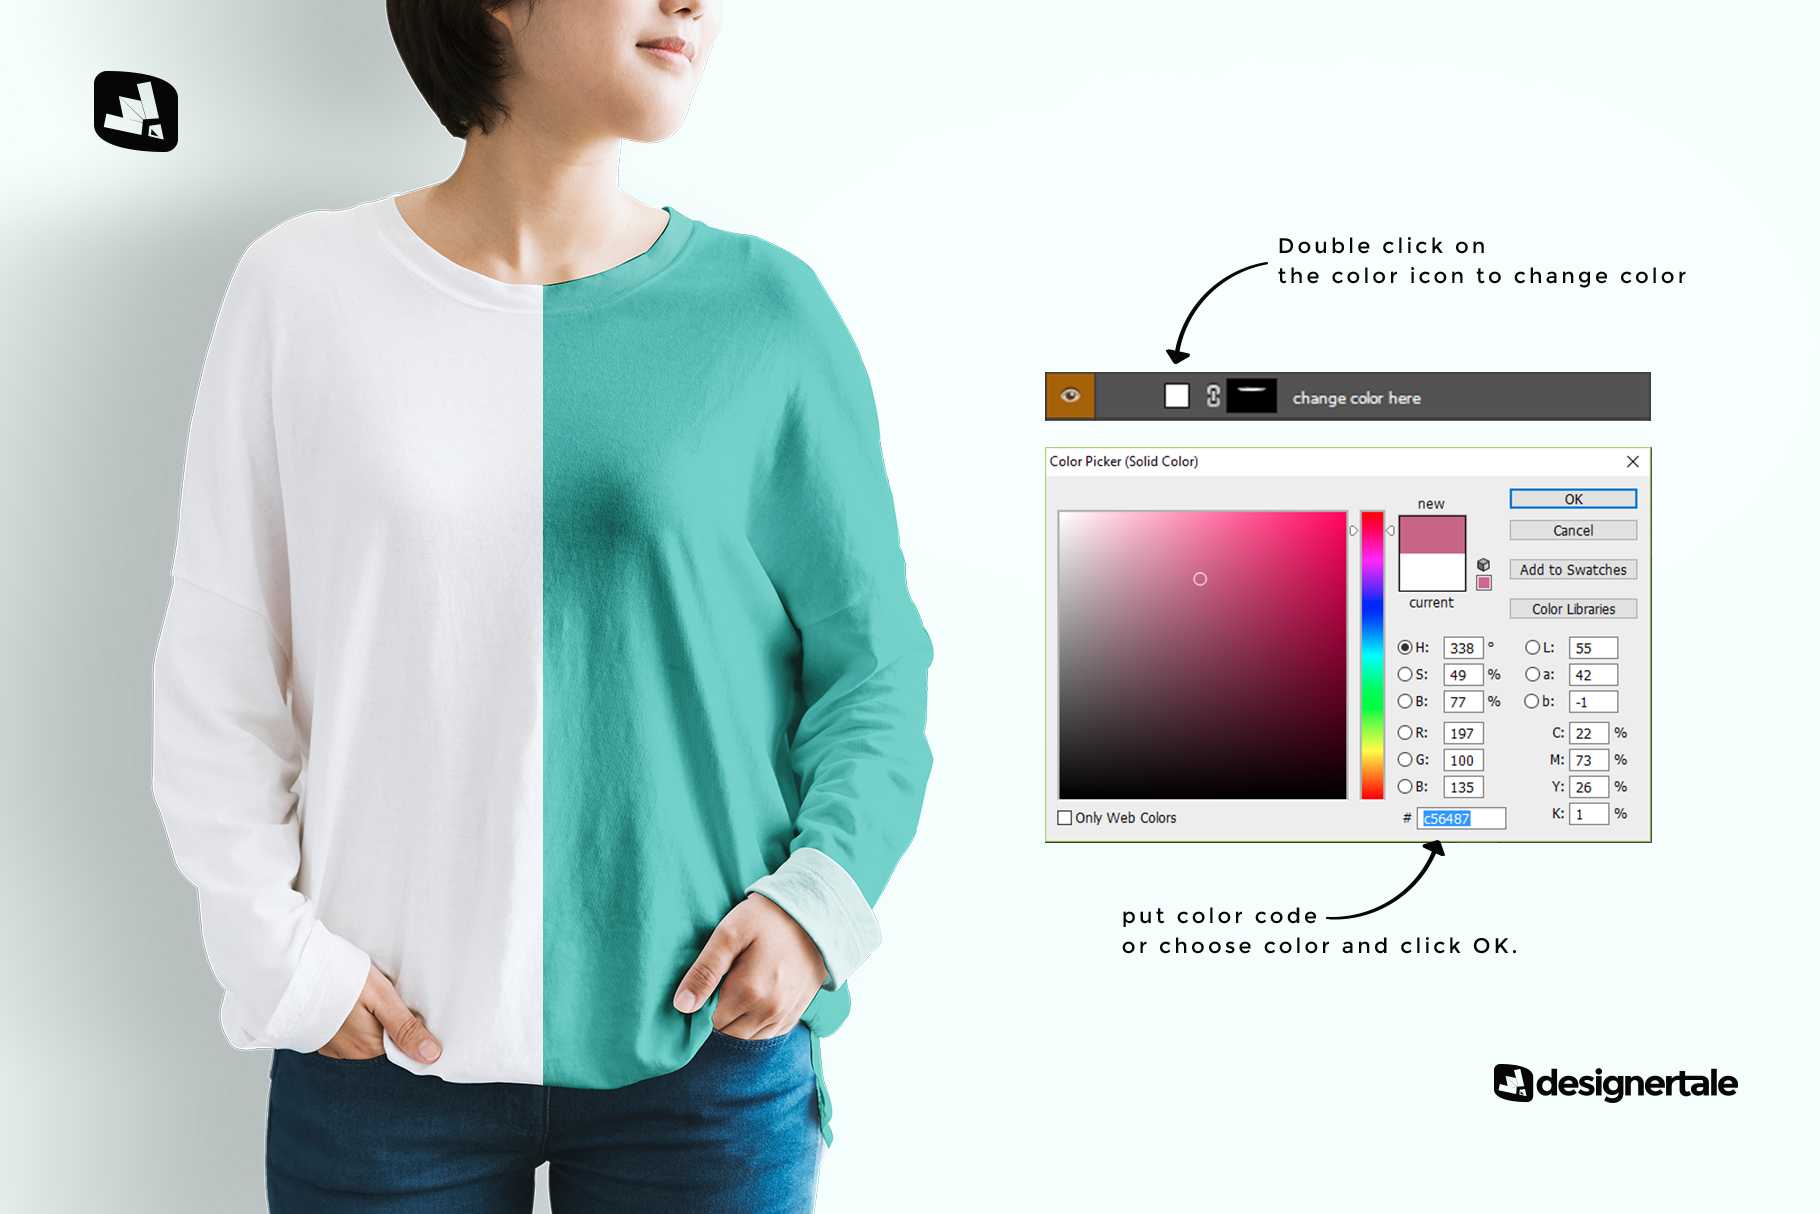 how to change color of the women's full sleeve tshirt mockup